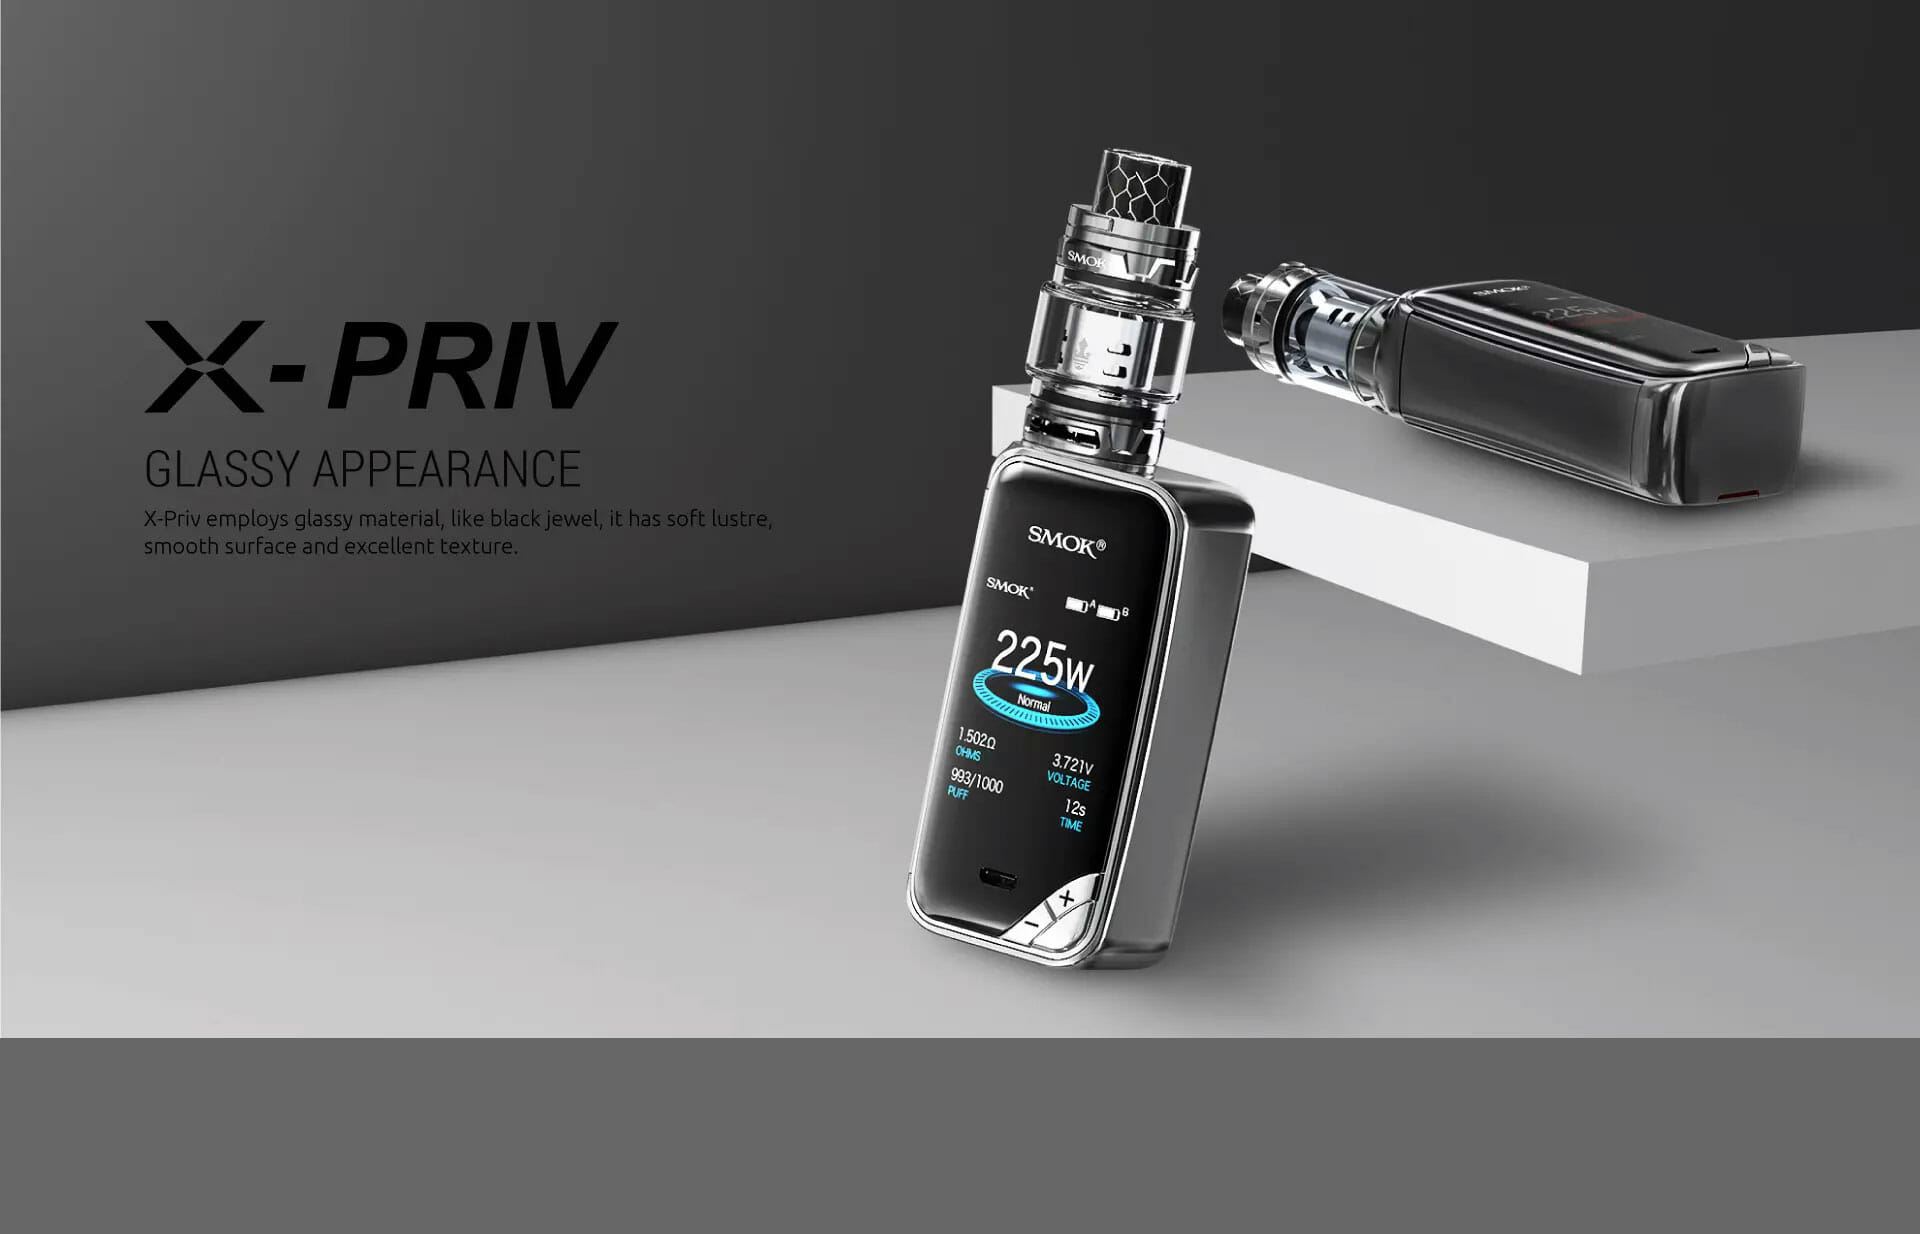 smok-x-priv-kit-product-page3